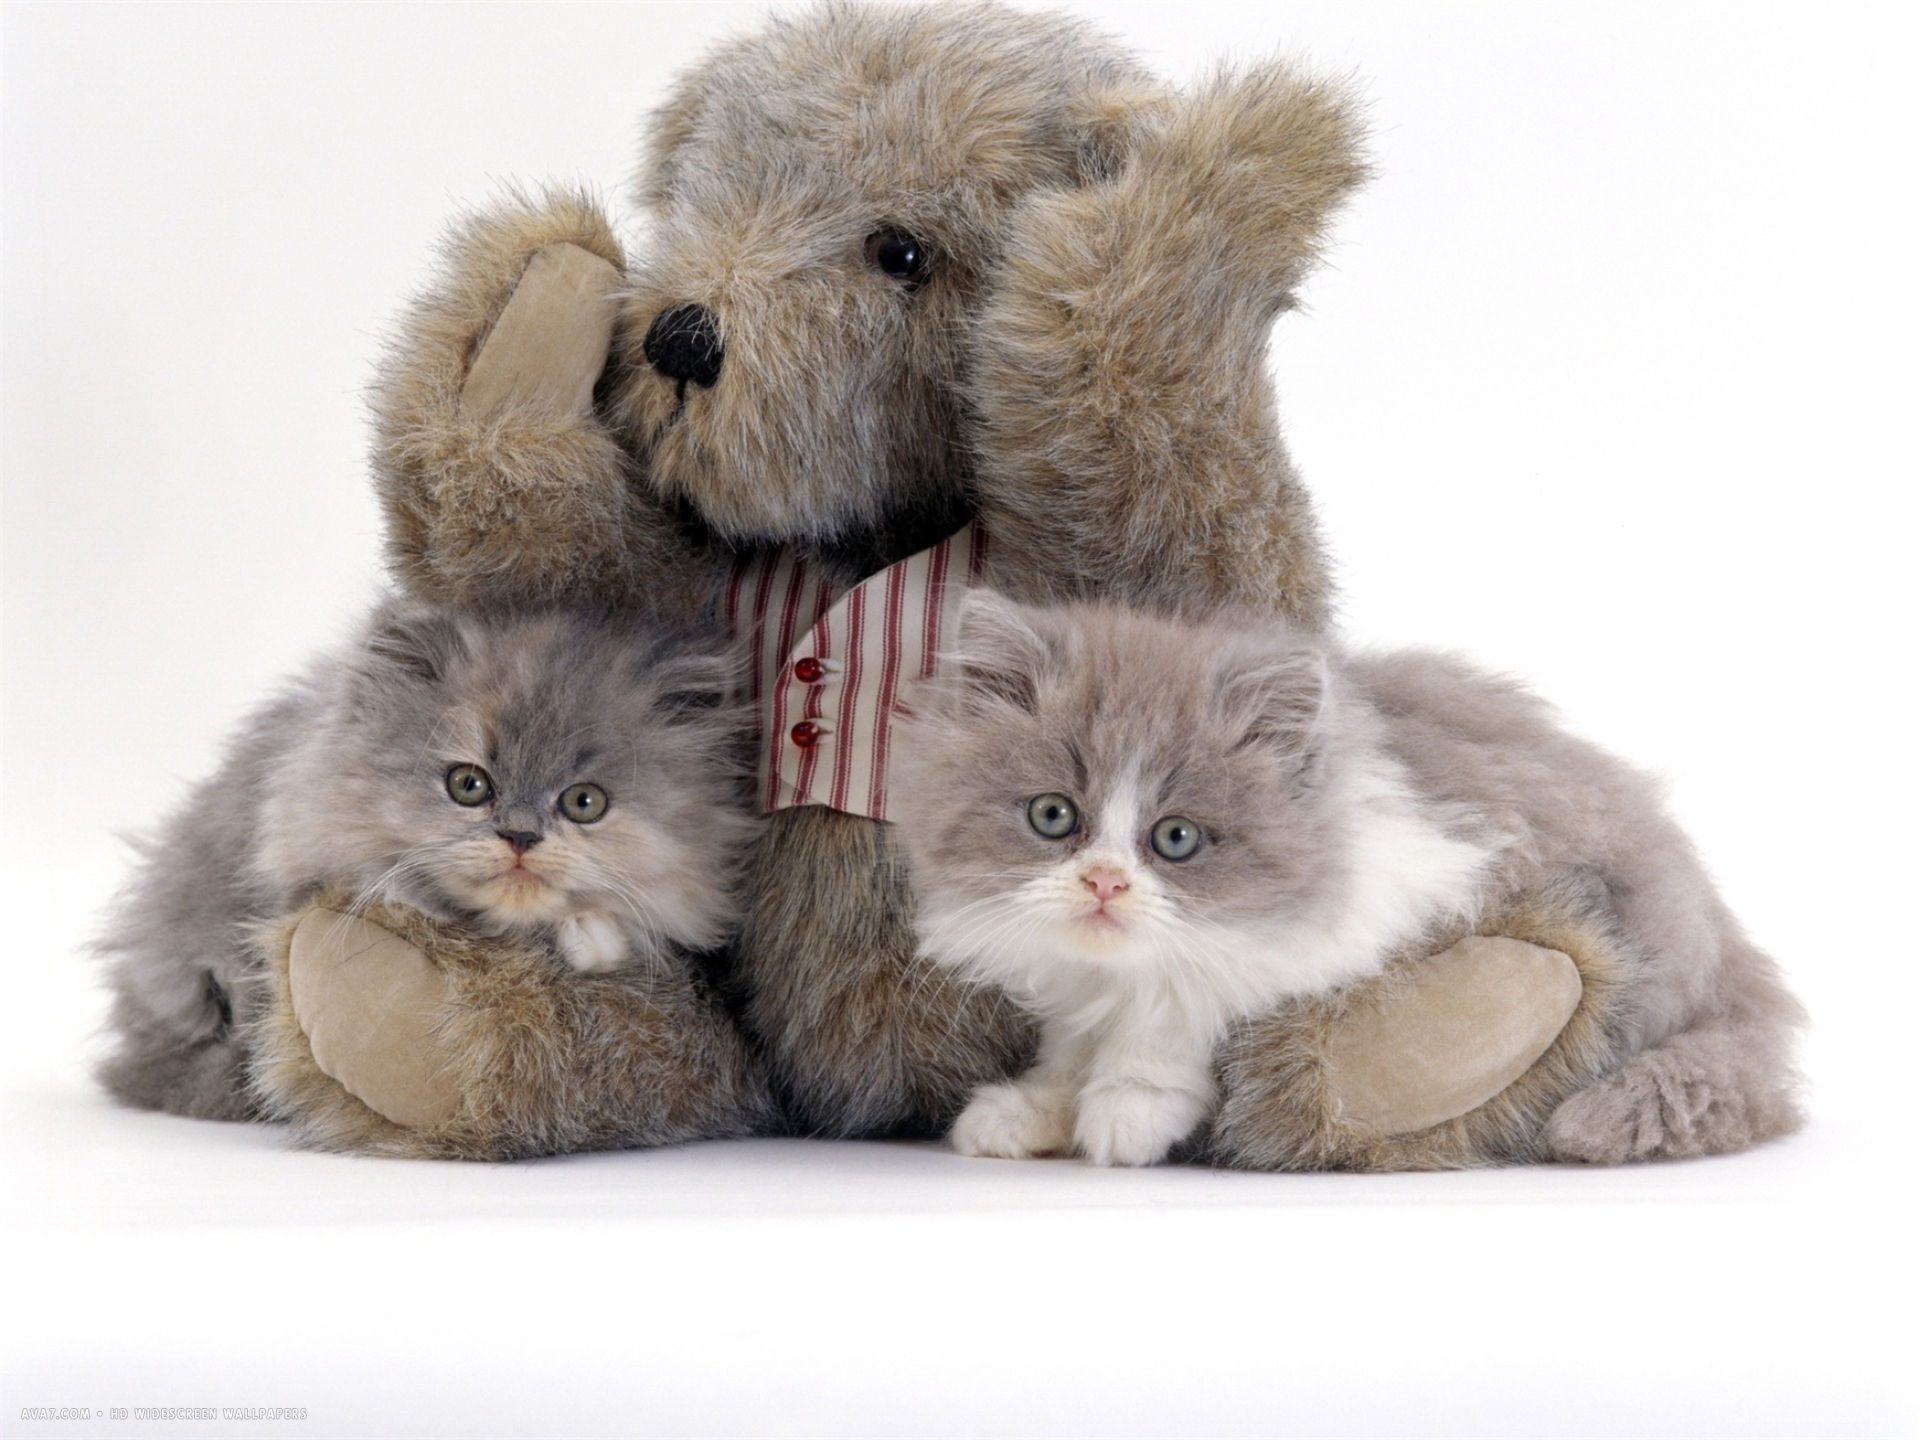 two blue persian kittens with a brindle teddy bear